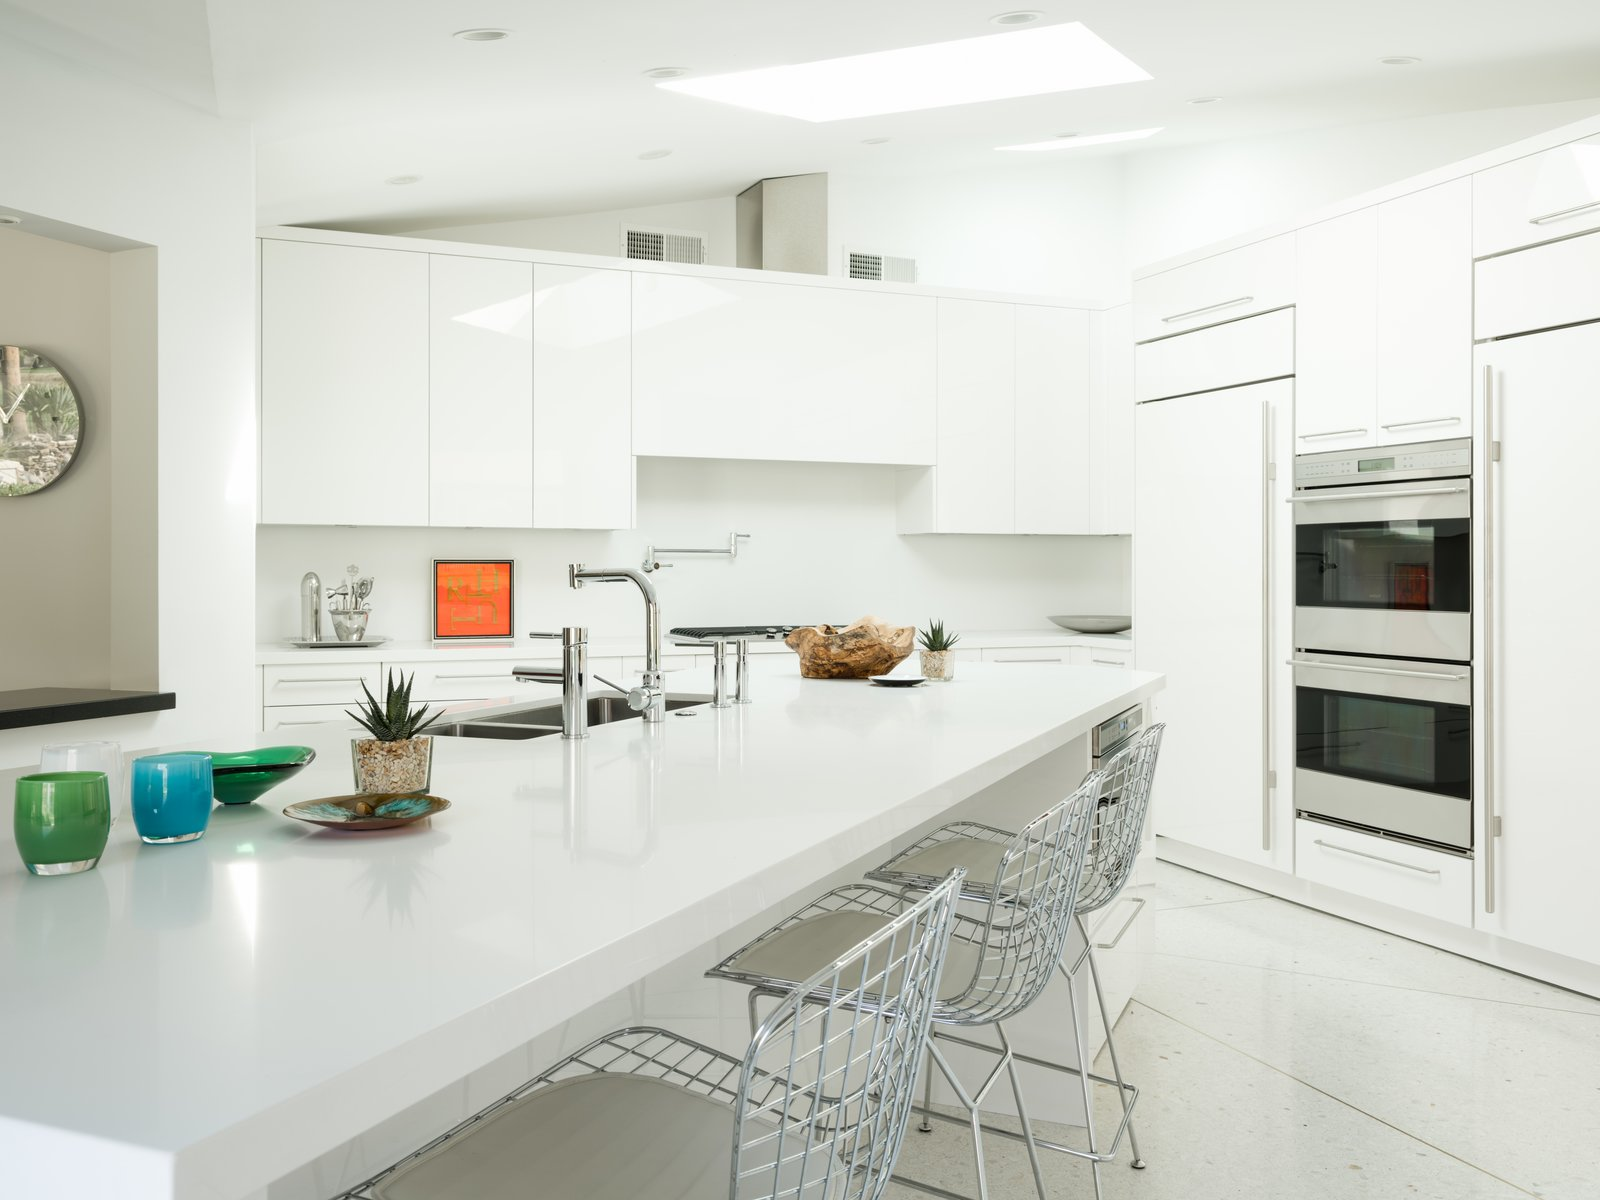 Kitchen, Terrazzo Floor, Refrigerator, White Cabinet, Wall Oven, Undermount Sink, Recessed Lighting, and Range The kitchen.  Photo 14 of 19 in Own William Krisel's Palm Springs Pod House For $2.5M